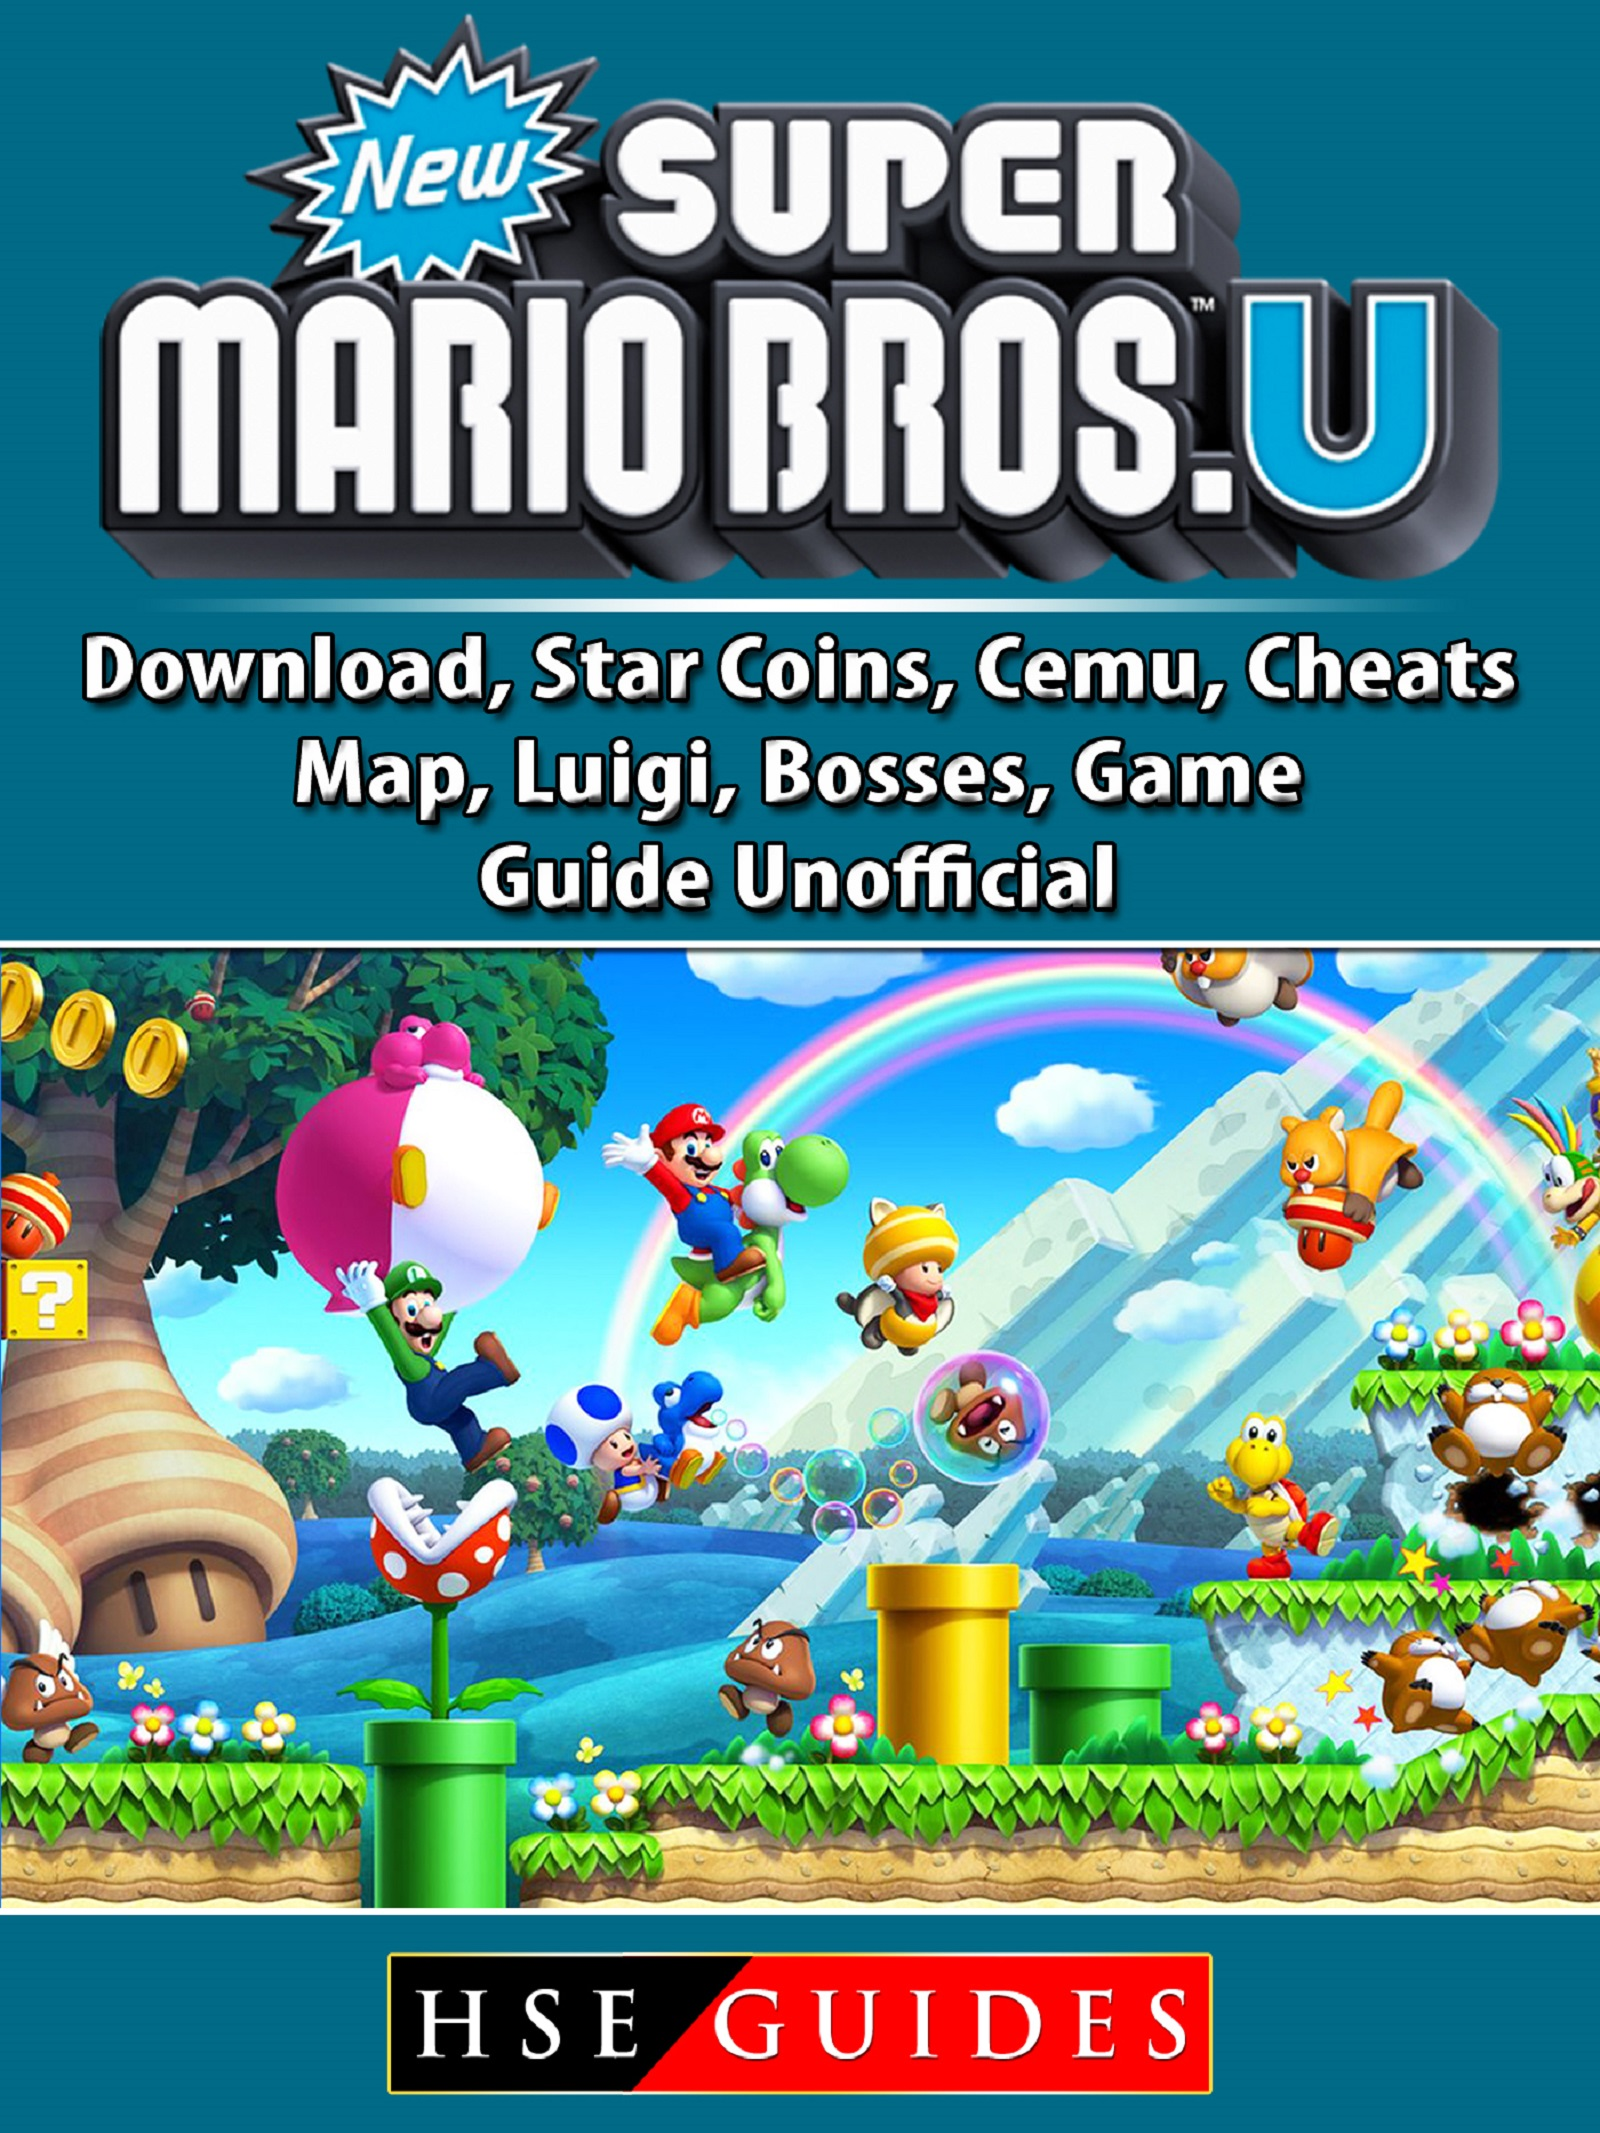 New Super Mario Bros U, Download, Star Coins, Cemu, Cheats, Map, Luigi, Bosses, Game Guide Unofficial By Hse Guides